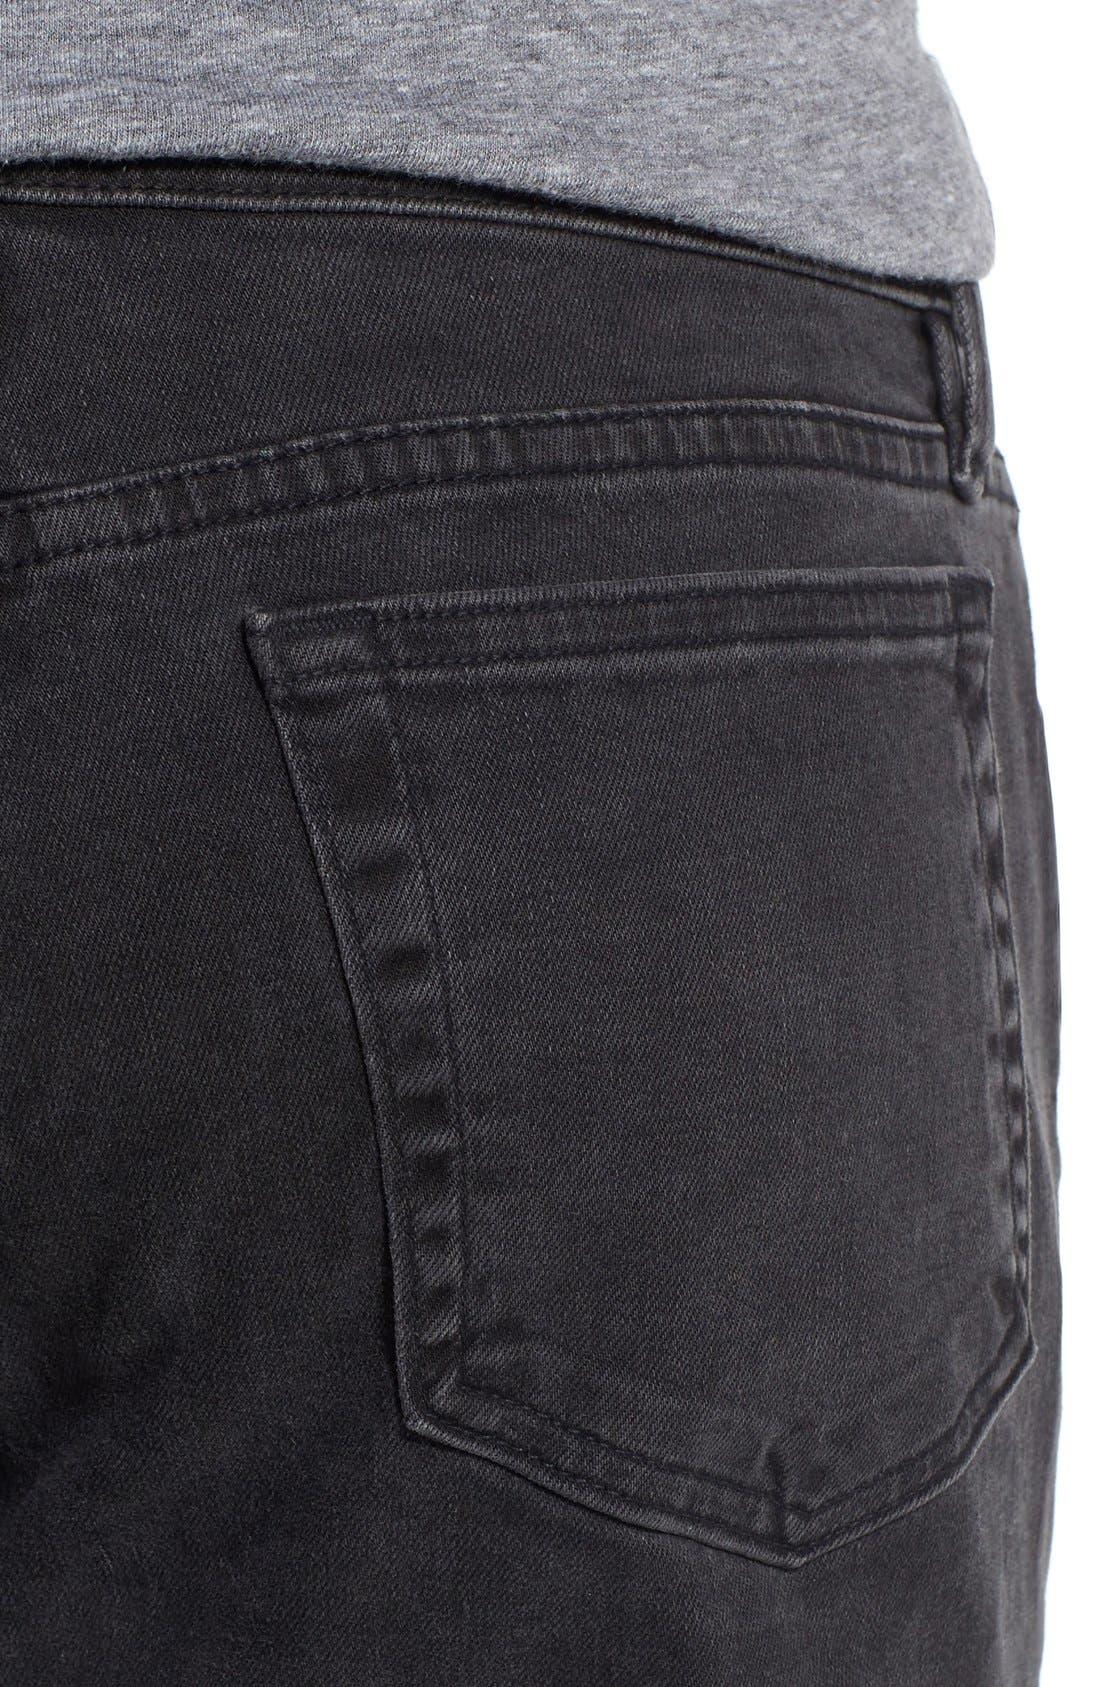 'L'Homme' Skinny Fit Jeans,                             Alternate thumbnail 4, color,                             FADE TO GREY